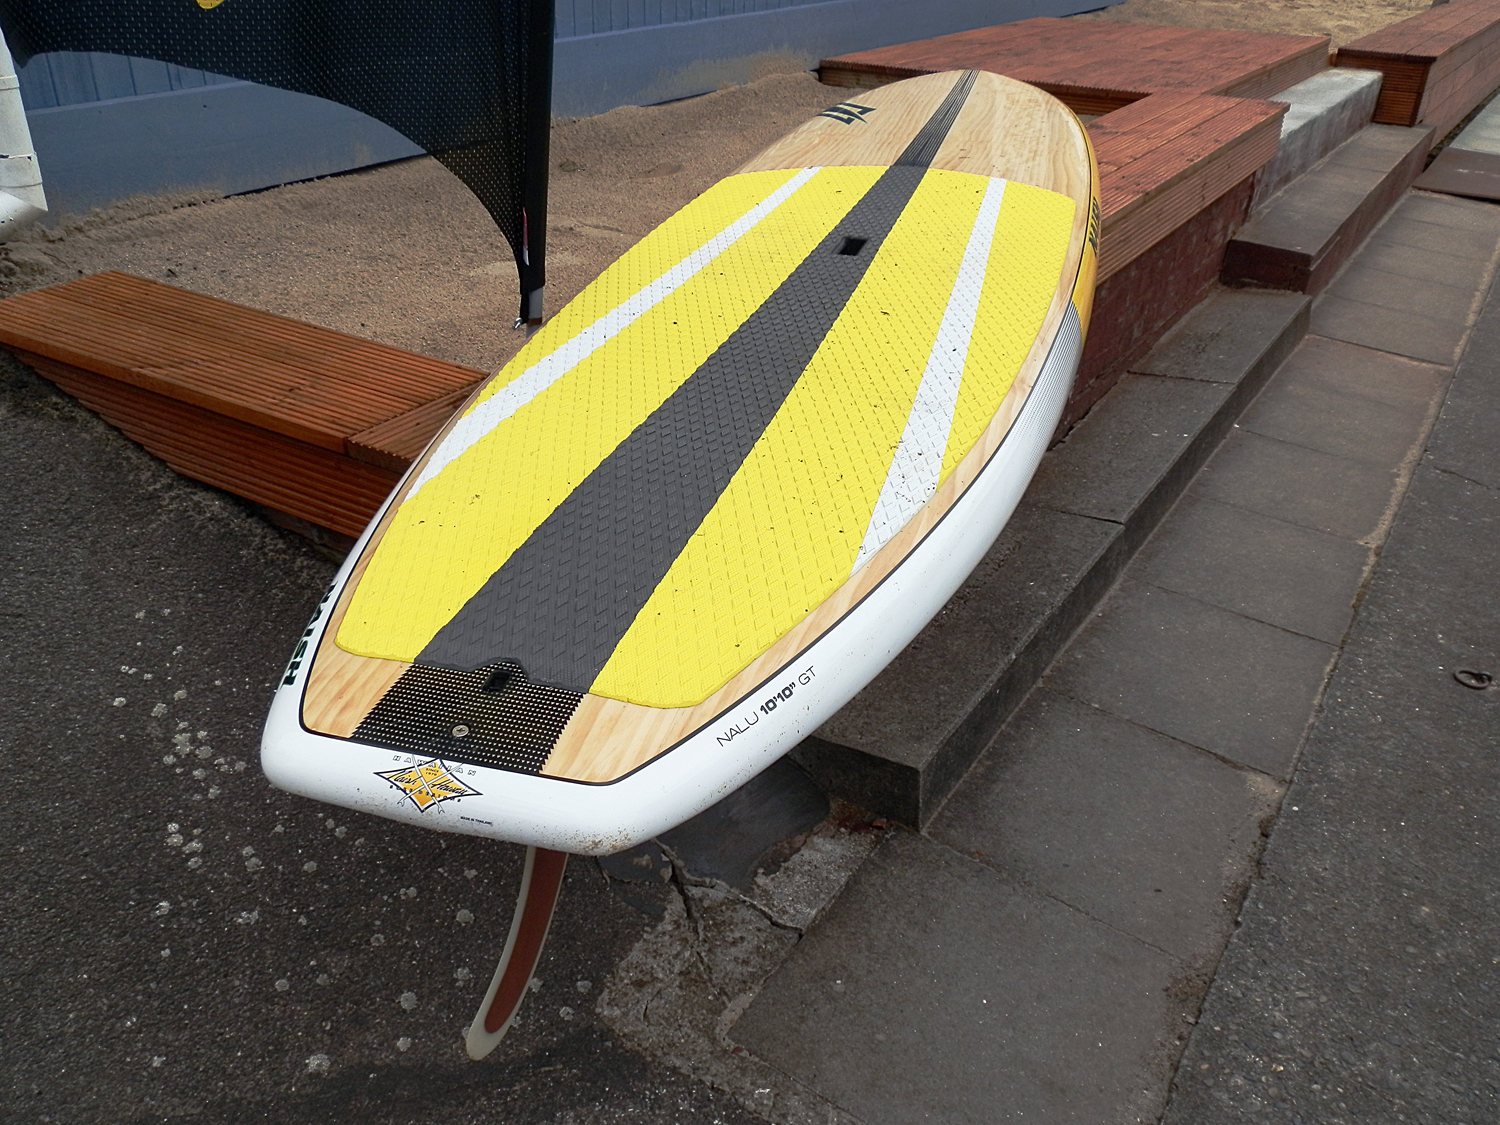 SUP Board Verleih Anleger Hamburg